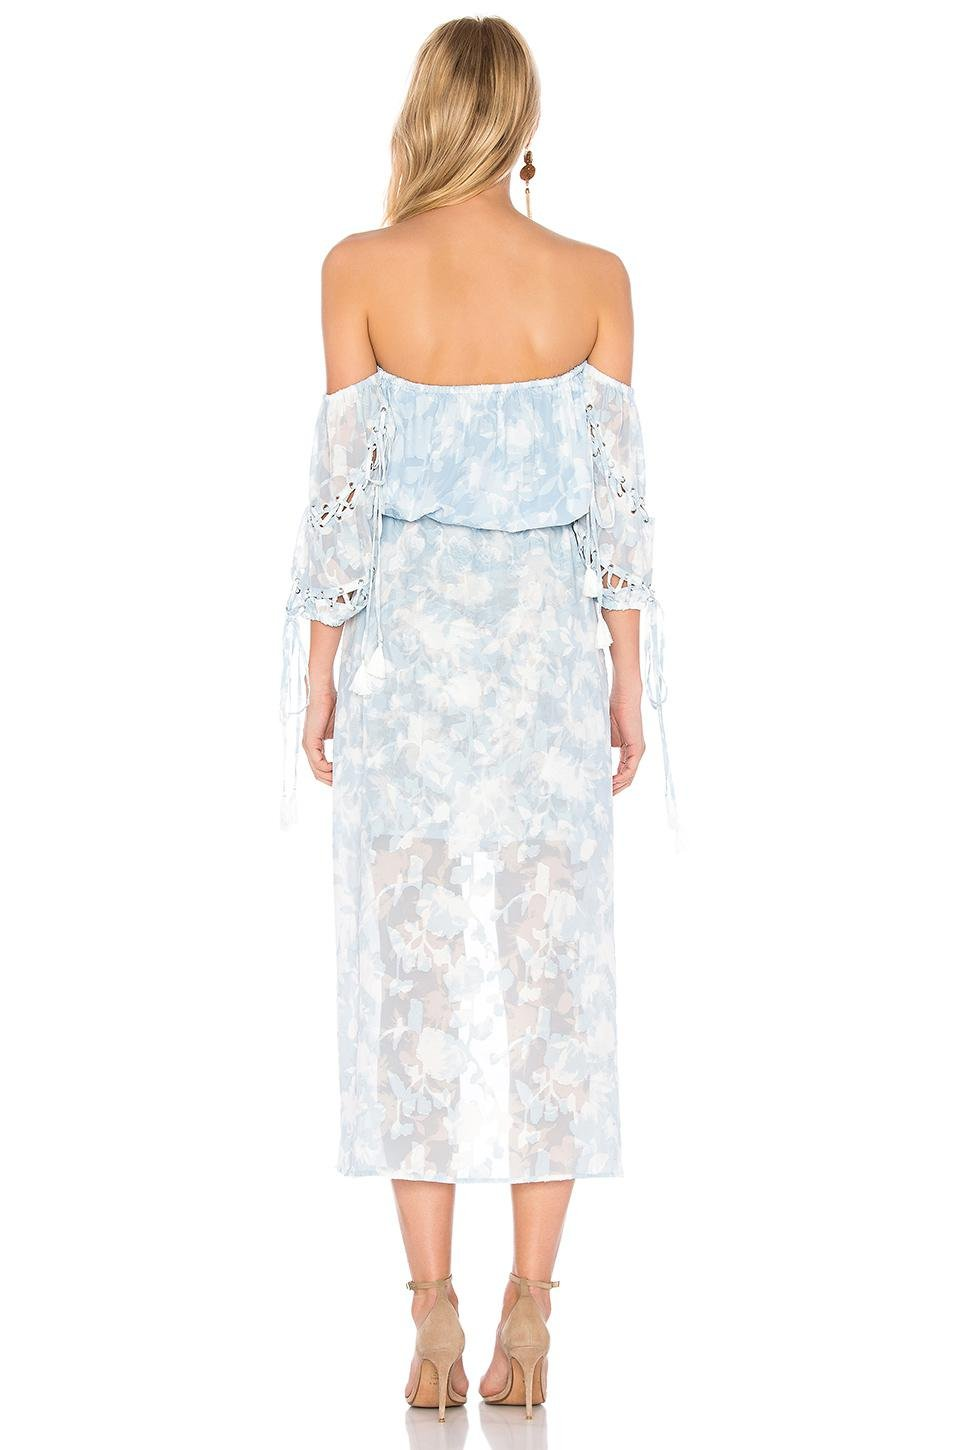 3244cb10f358 Lyst - We Are Kindred Morning Frost Off Shoulder Dress in Blue